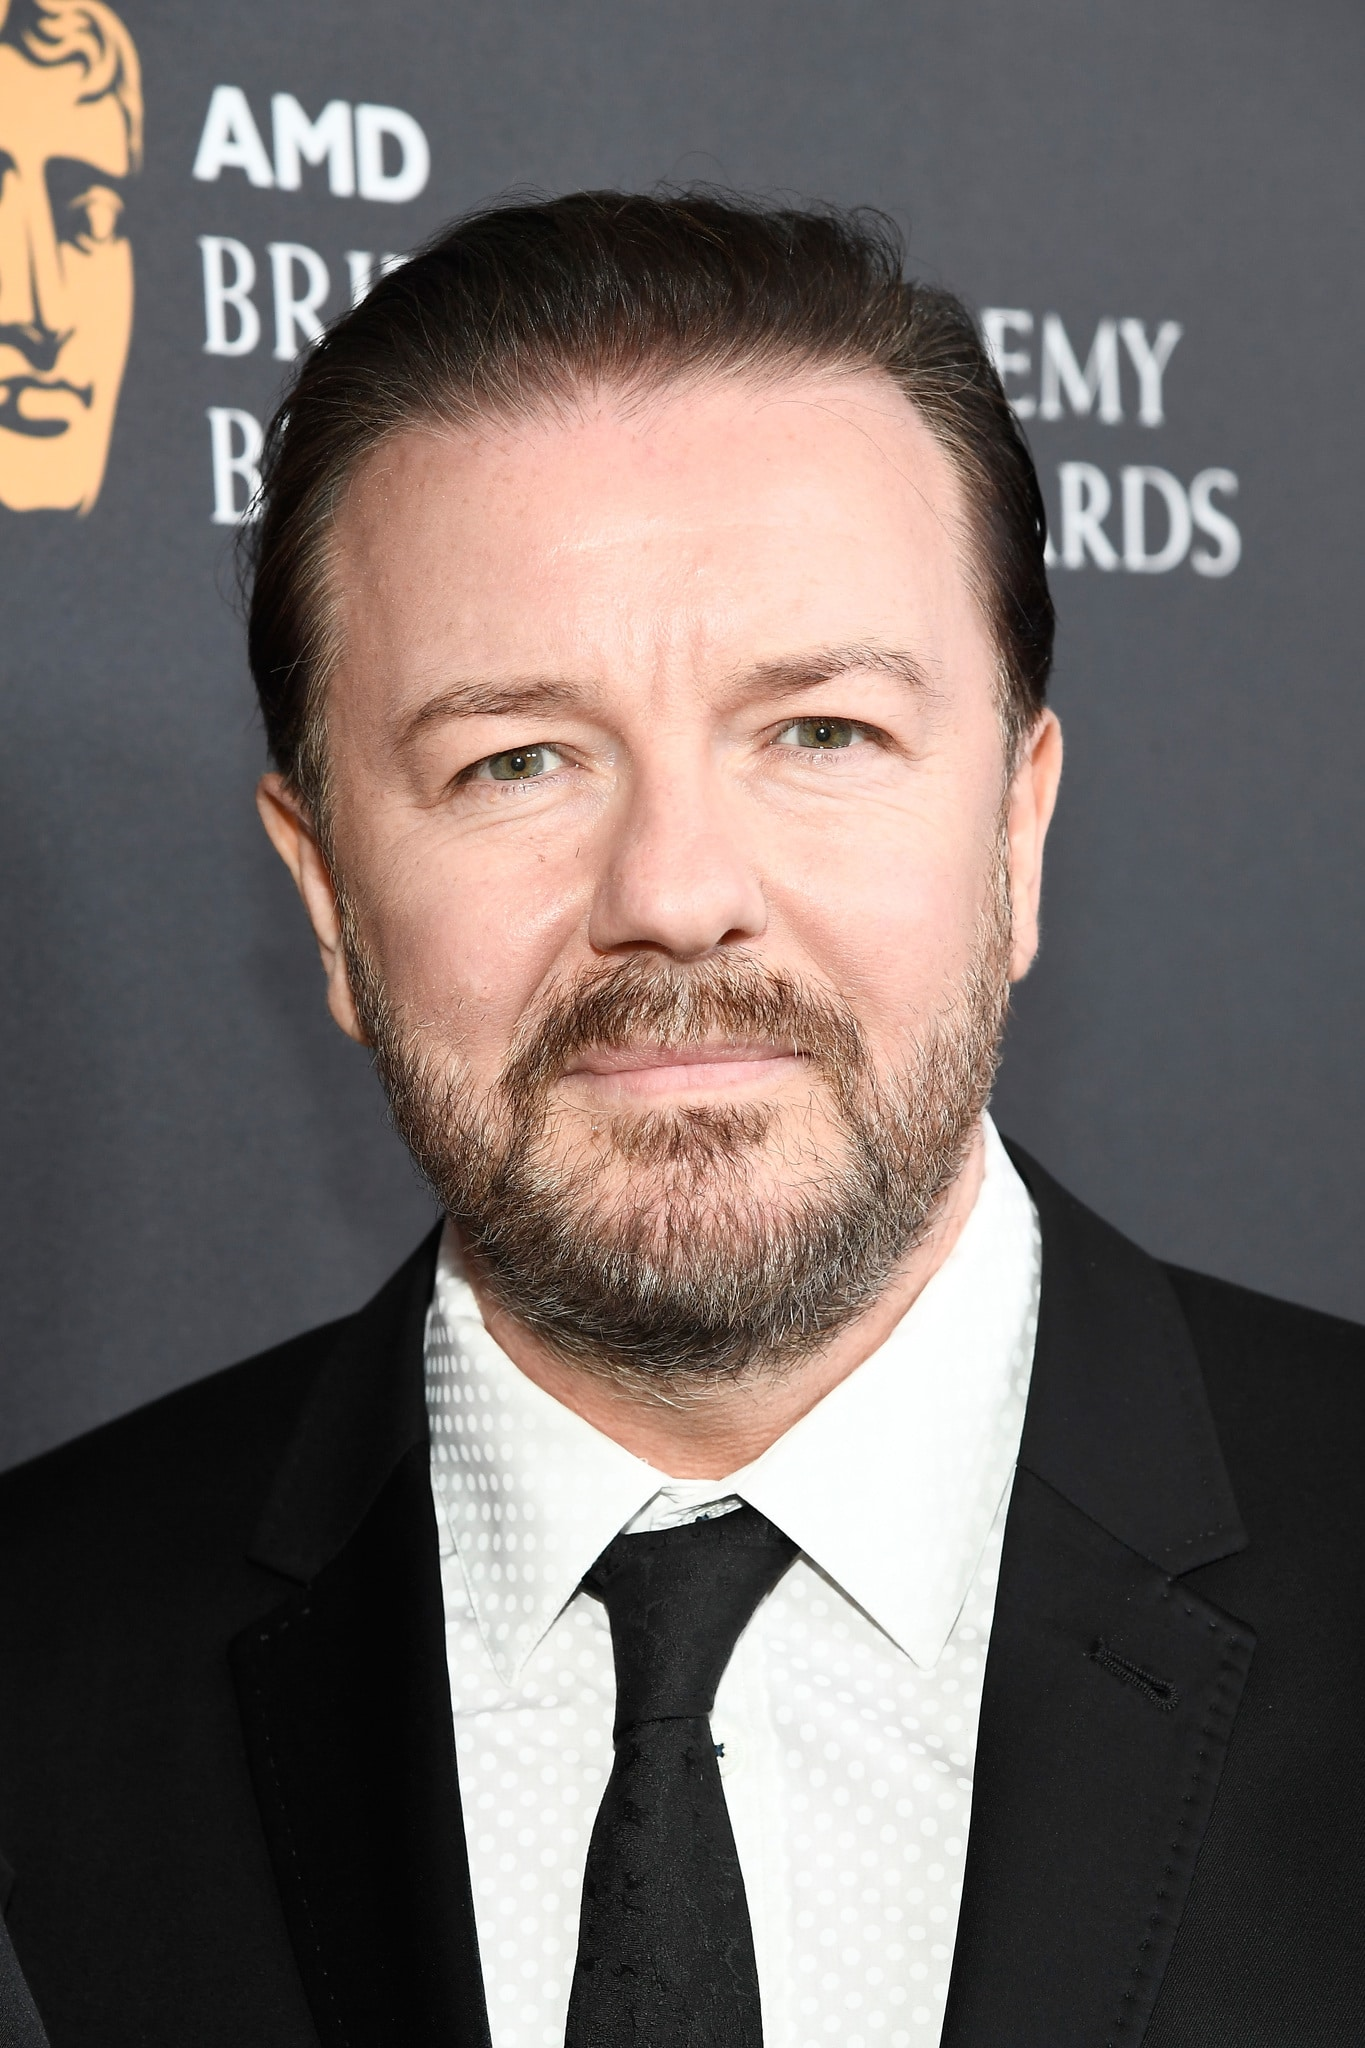 Ricky Gervais British Comedian, Author, Producer, Screenwriter, Singer, Director